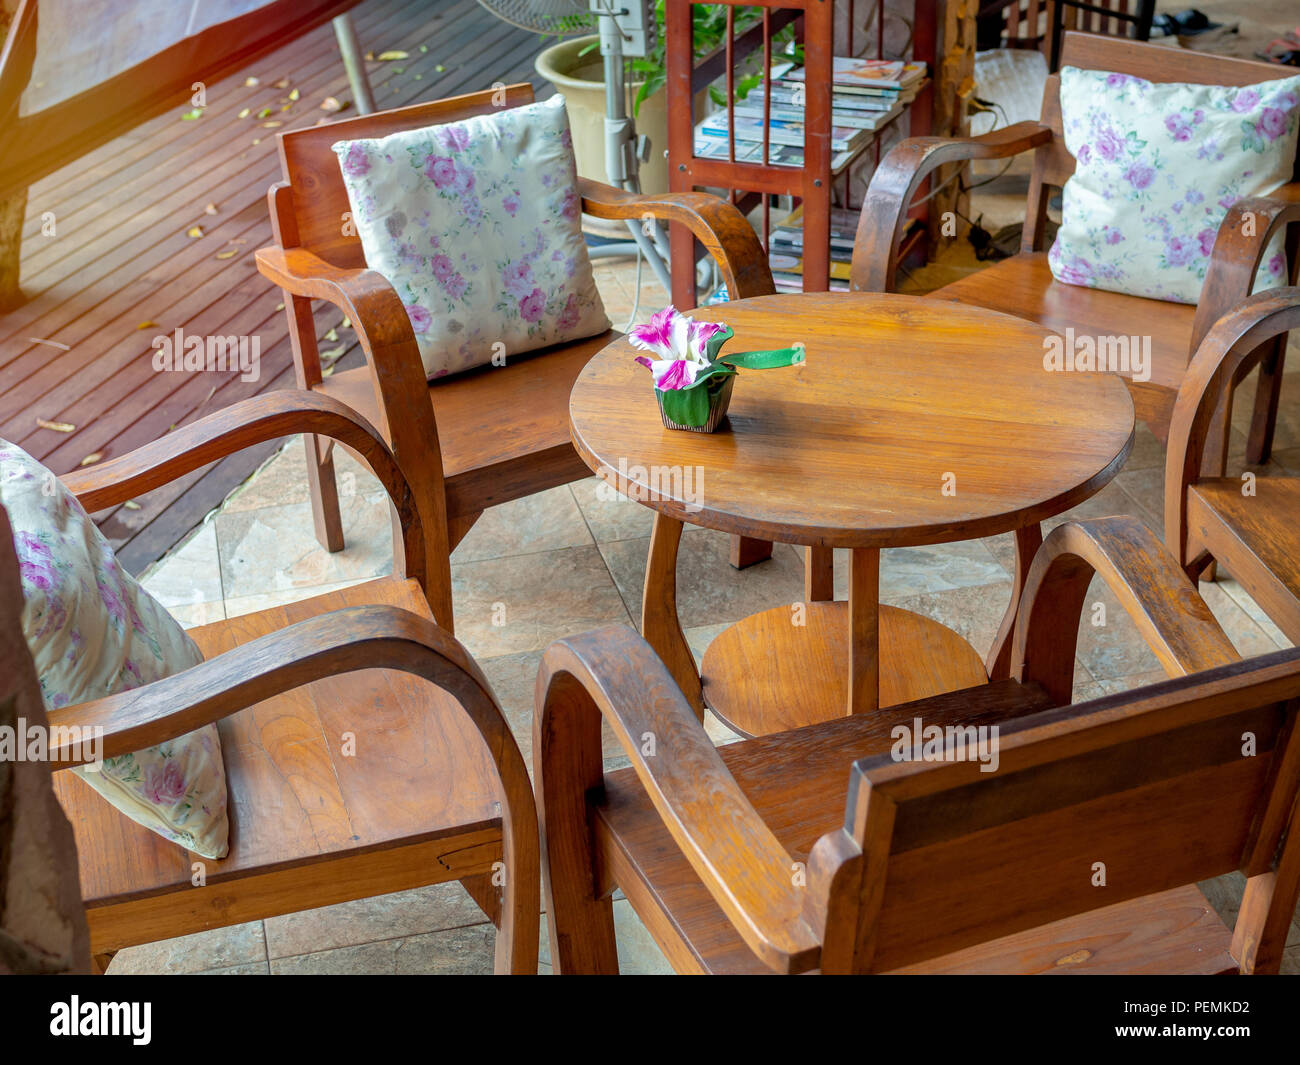 Wooden Armchairs With Pillows Round Table Flower In Pot On And Bookshelf Plank Floor Cafe